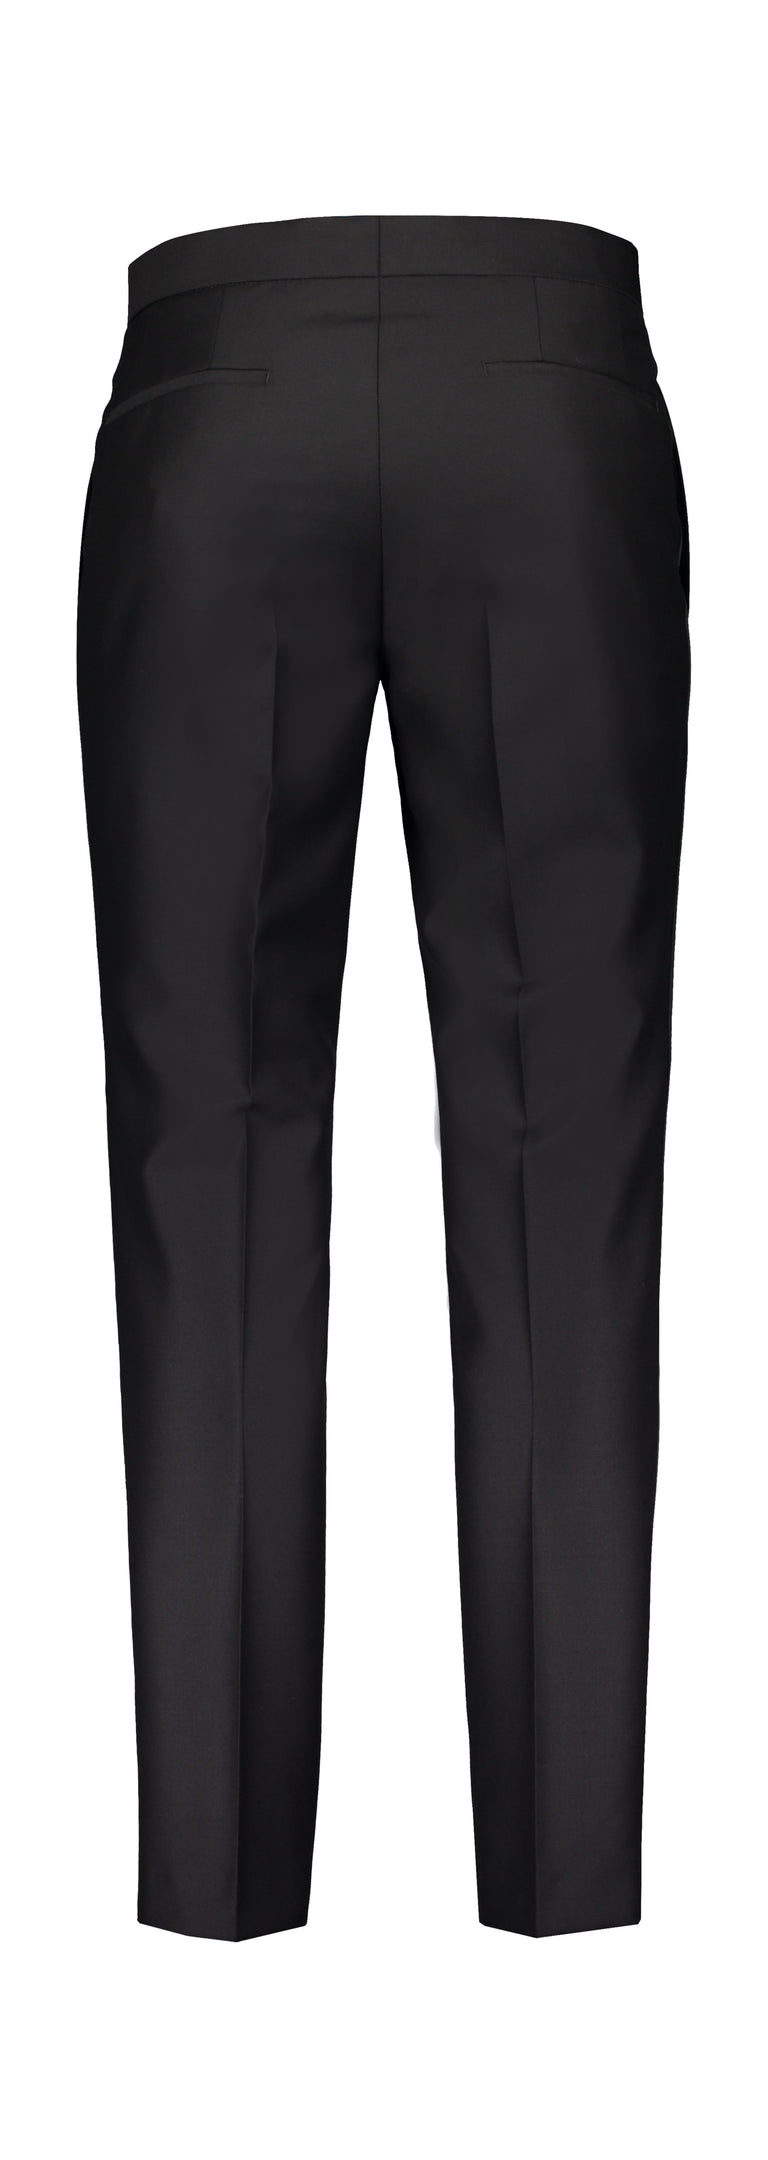 Modern fit trousers for white tie and tuxedo (4353145176126)